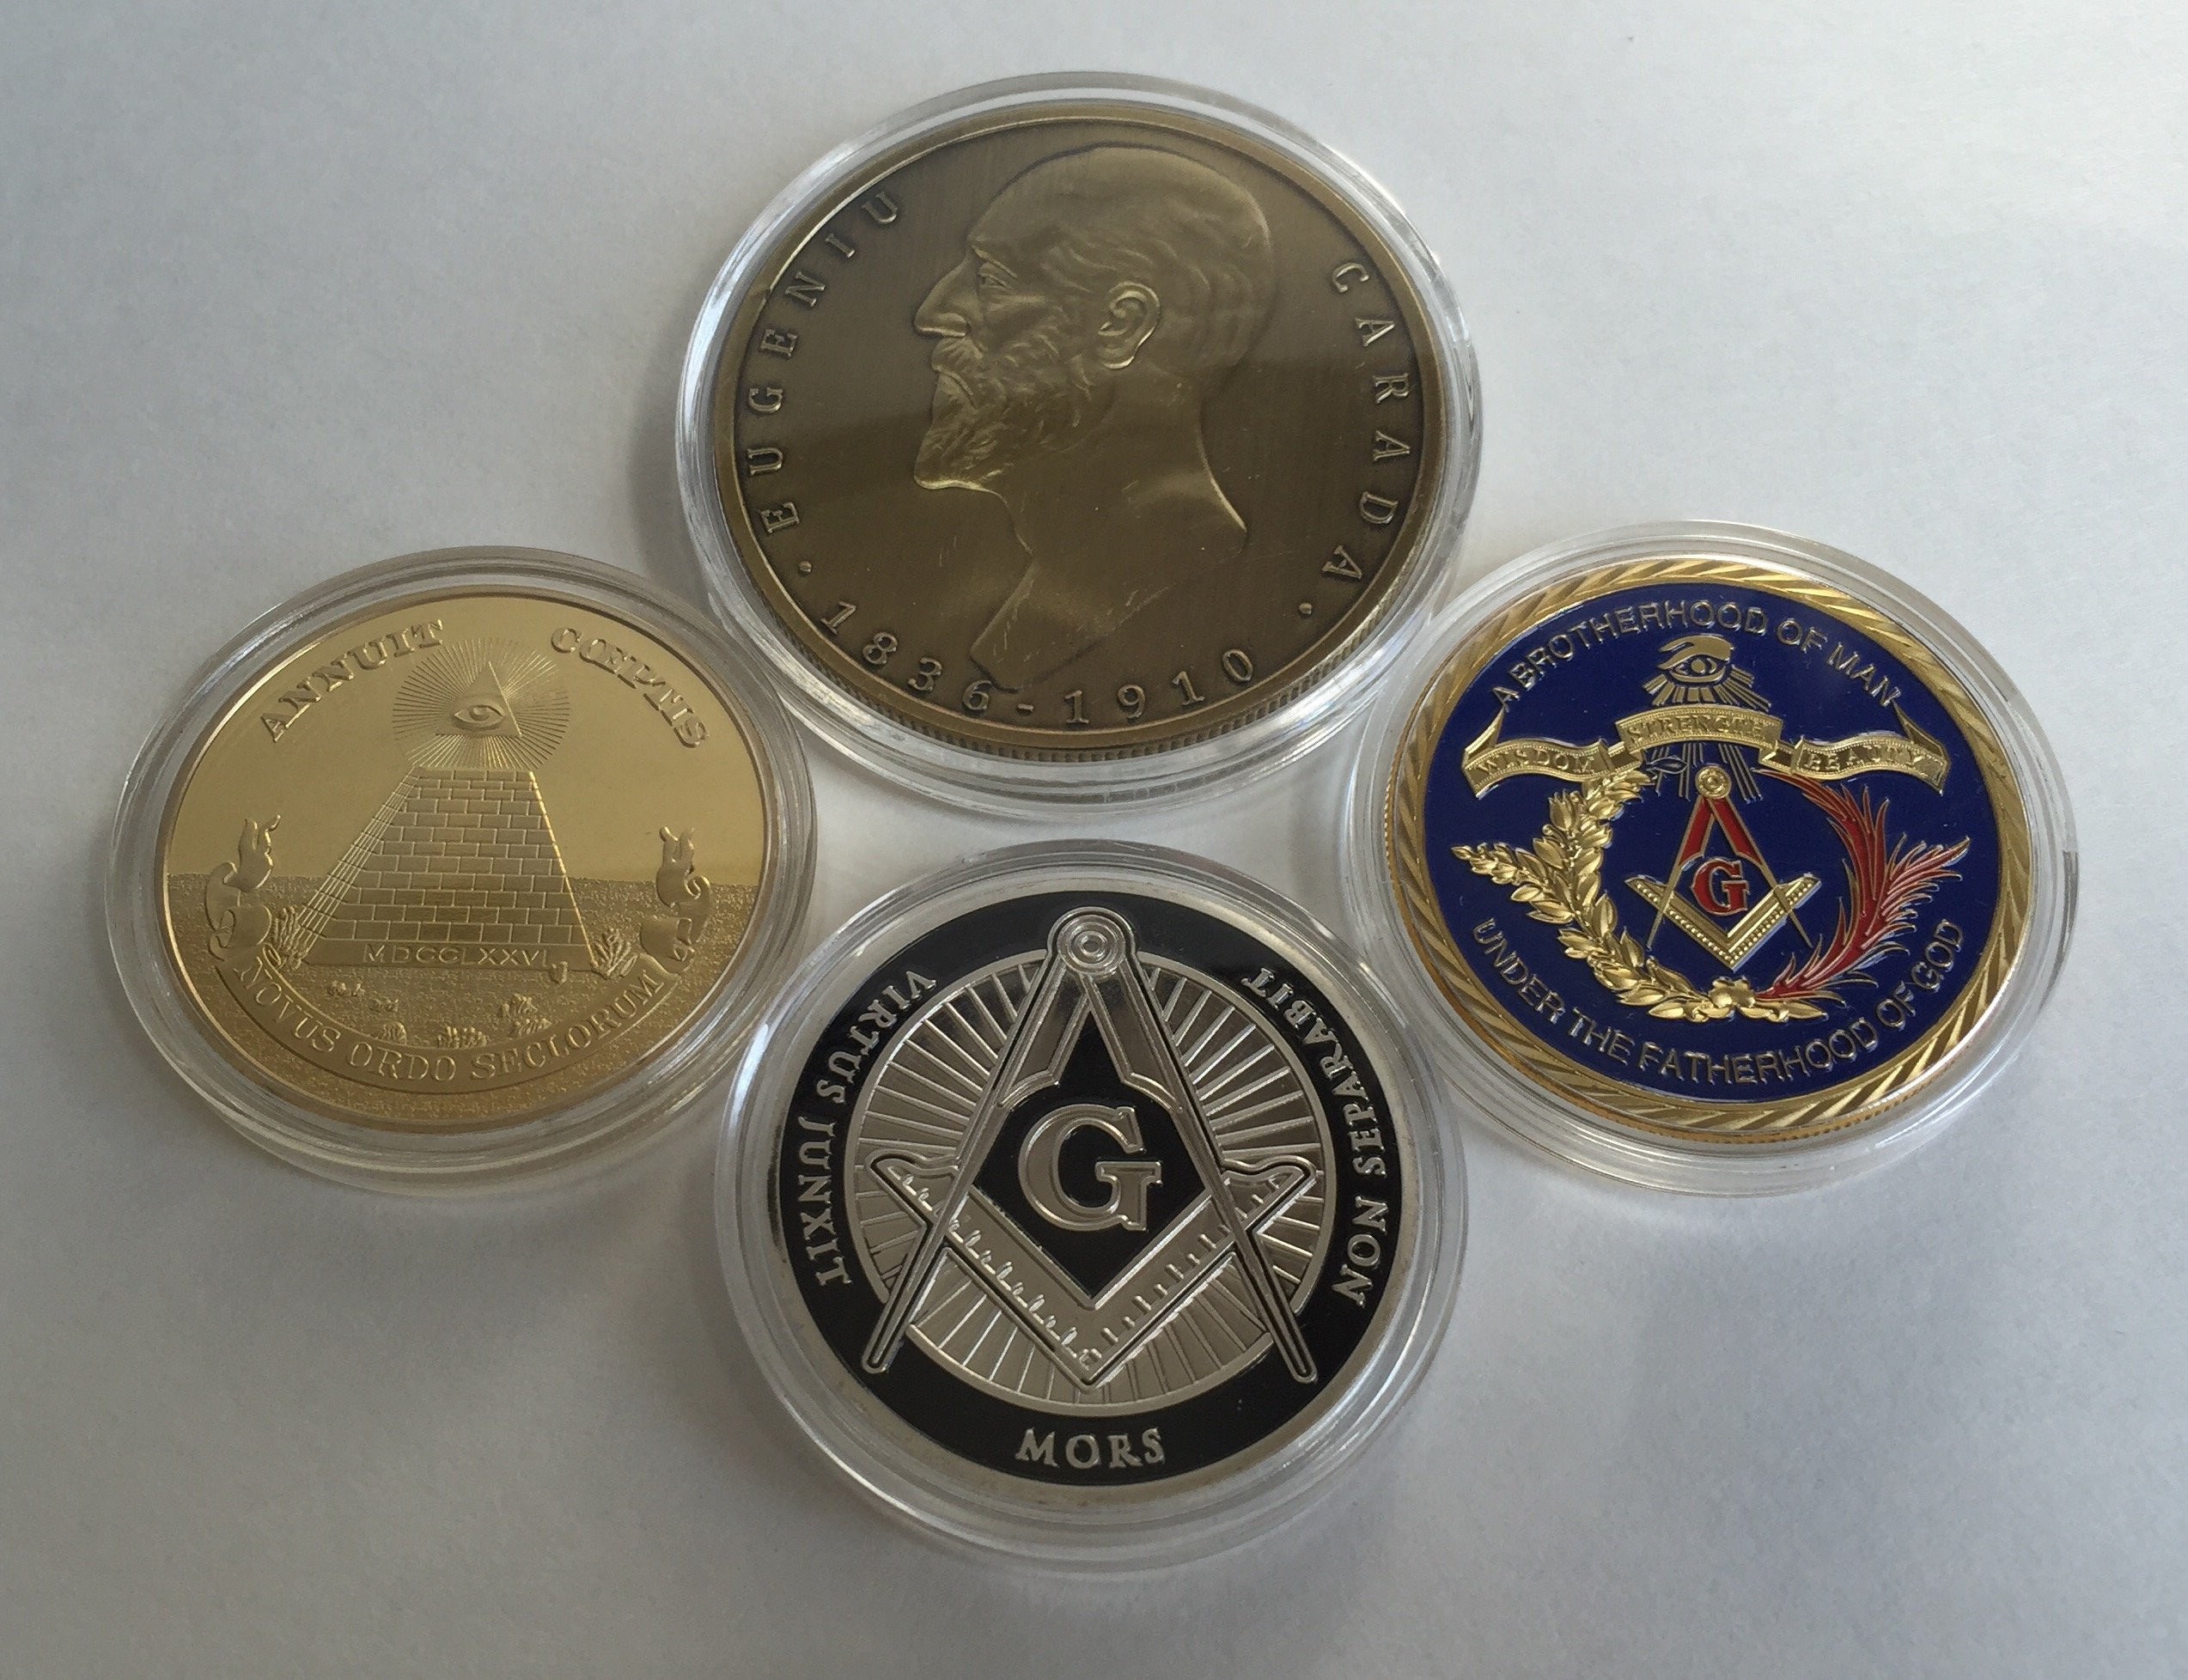 Set of 4 (1 silver, 1 bronze, 2 gold color) Freemason Collectible Challenge Coins by Lucky Donk, Poker Card Guard, Golf Ball Marker, paperweight